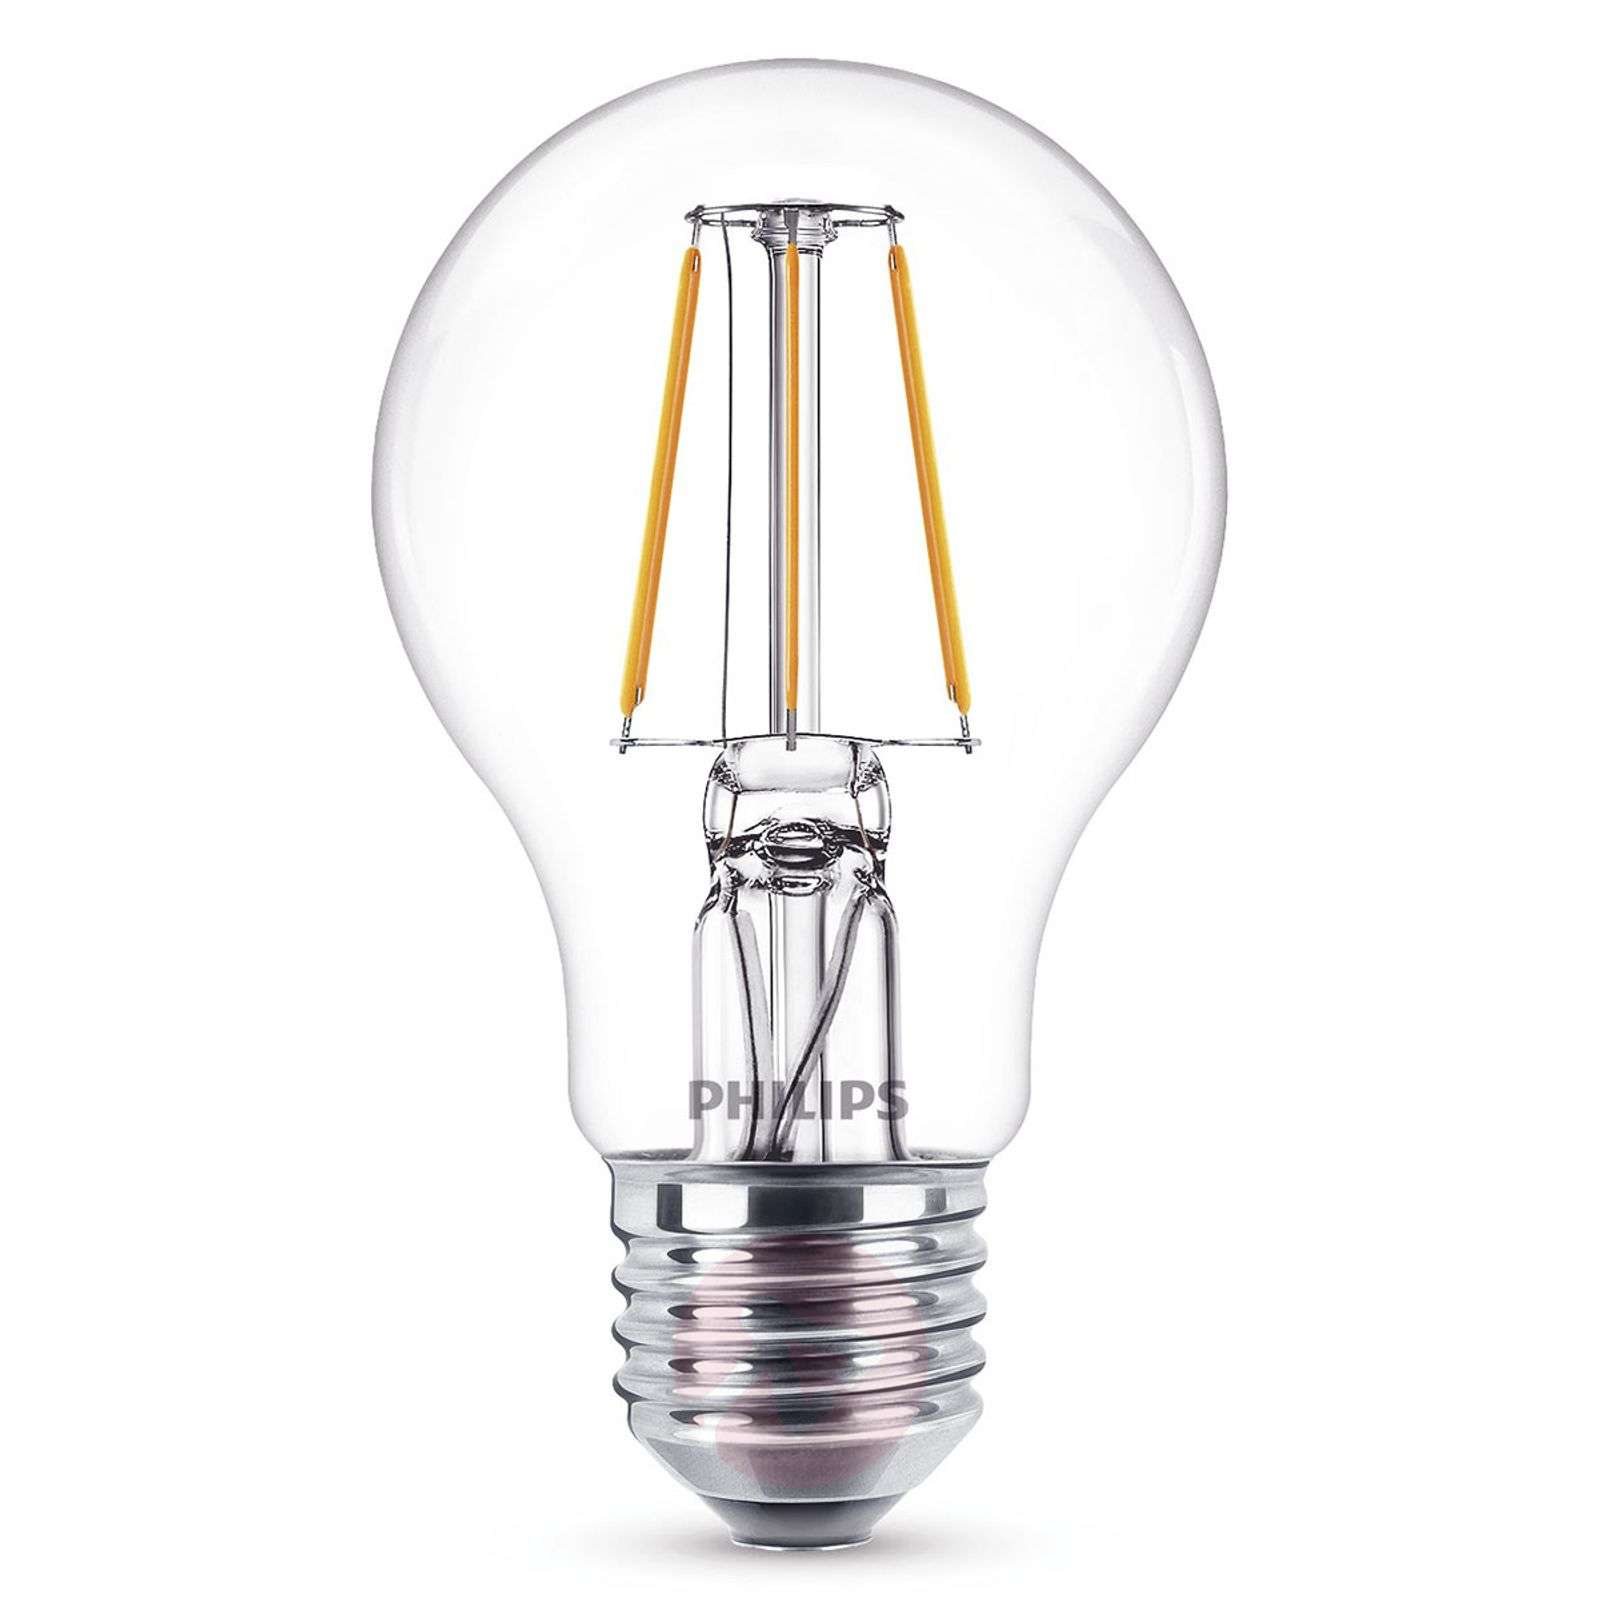 Ampoule LED filament E27 A60 4W 2 700K transparent-7530787-01